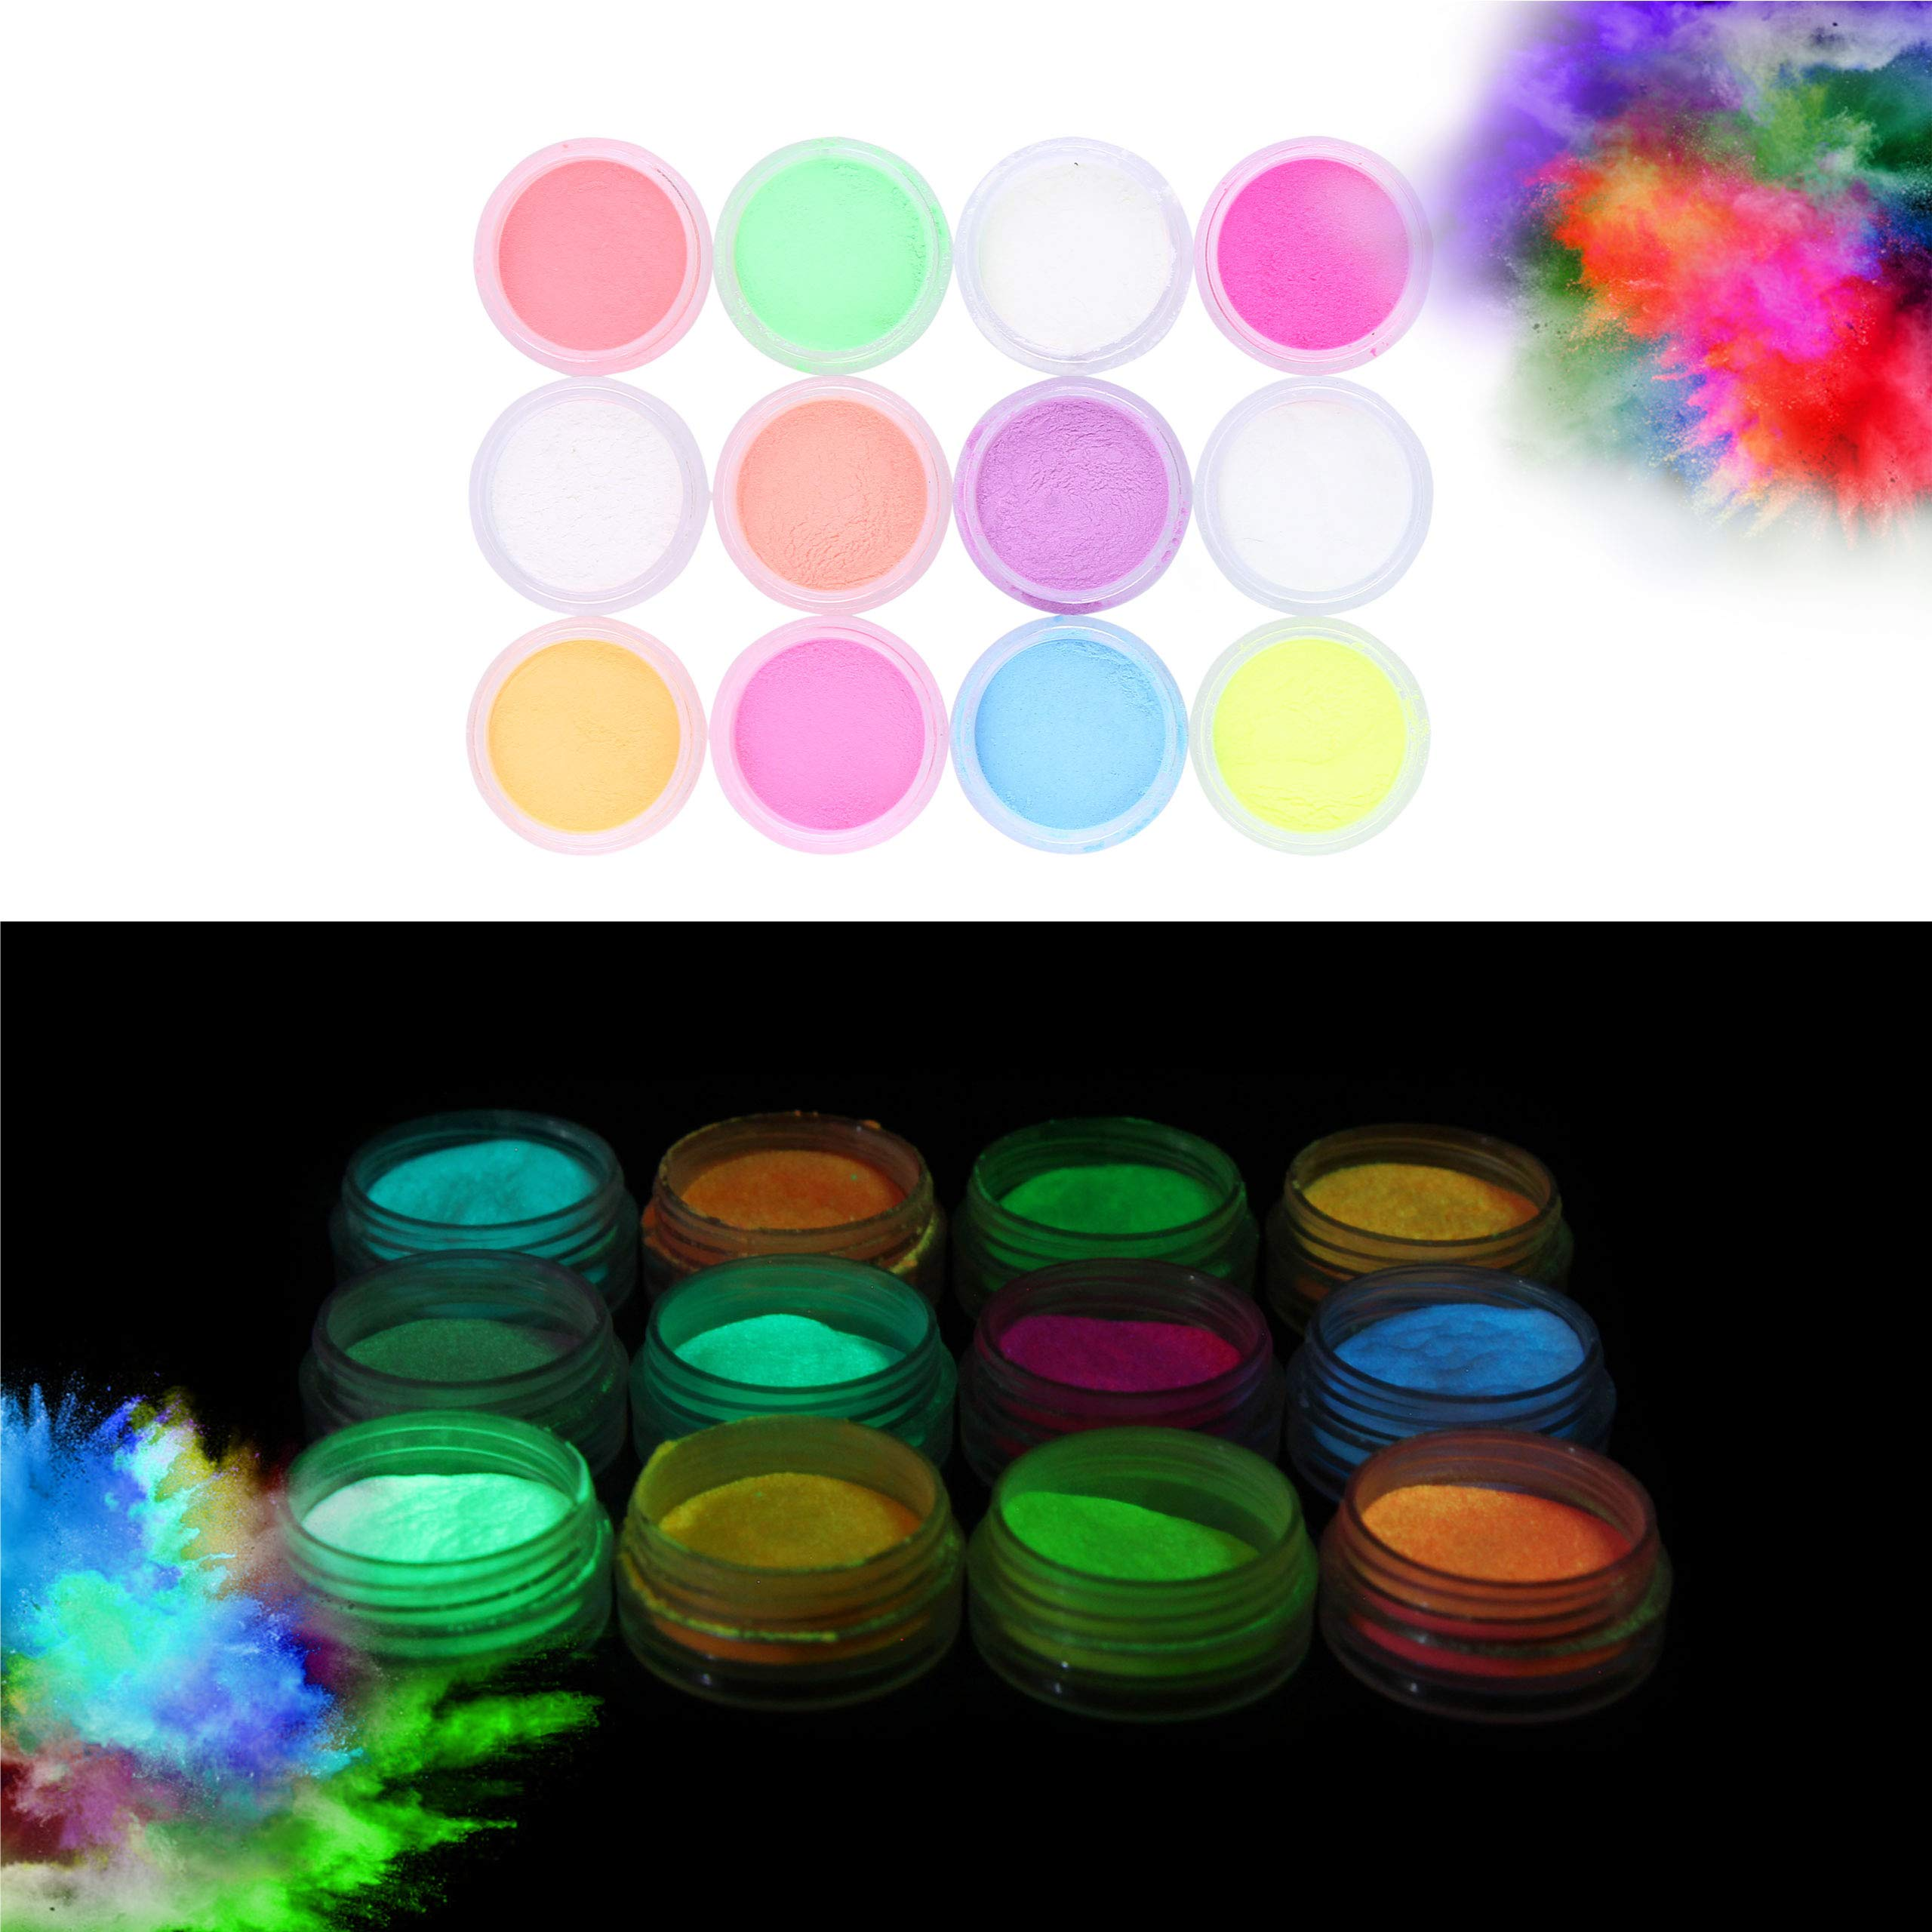 Glow in the Dark Powder -(Pack of 24) Luminous Pigment Powder Fluorescent UV Neon Color Changing luminescent Phosphorescent Thermochromic Dye Dust Glo for Slime Nails Resin Acrylic Paint Ink Non-Toxic by Lolo Crafts